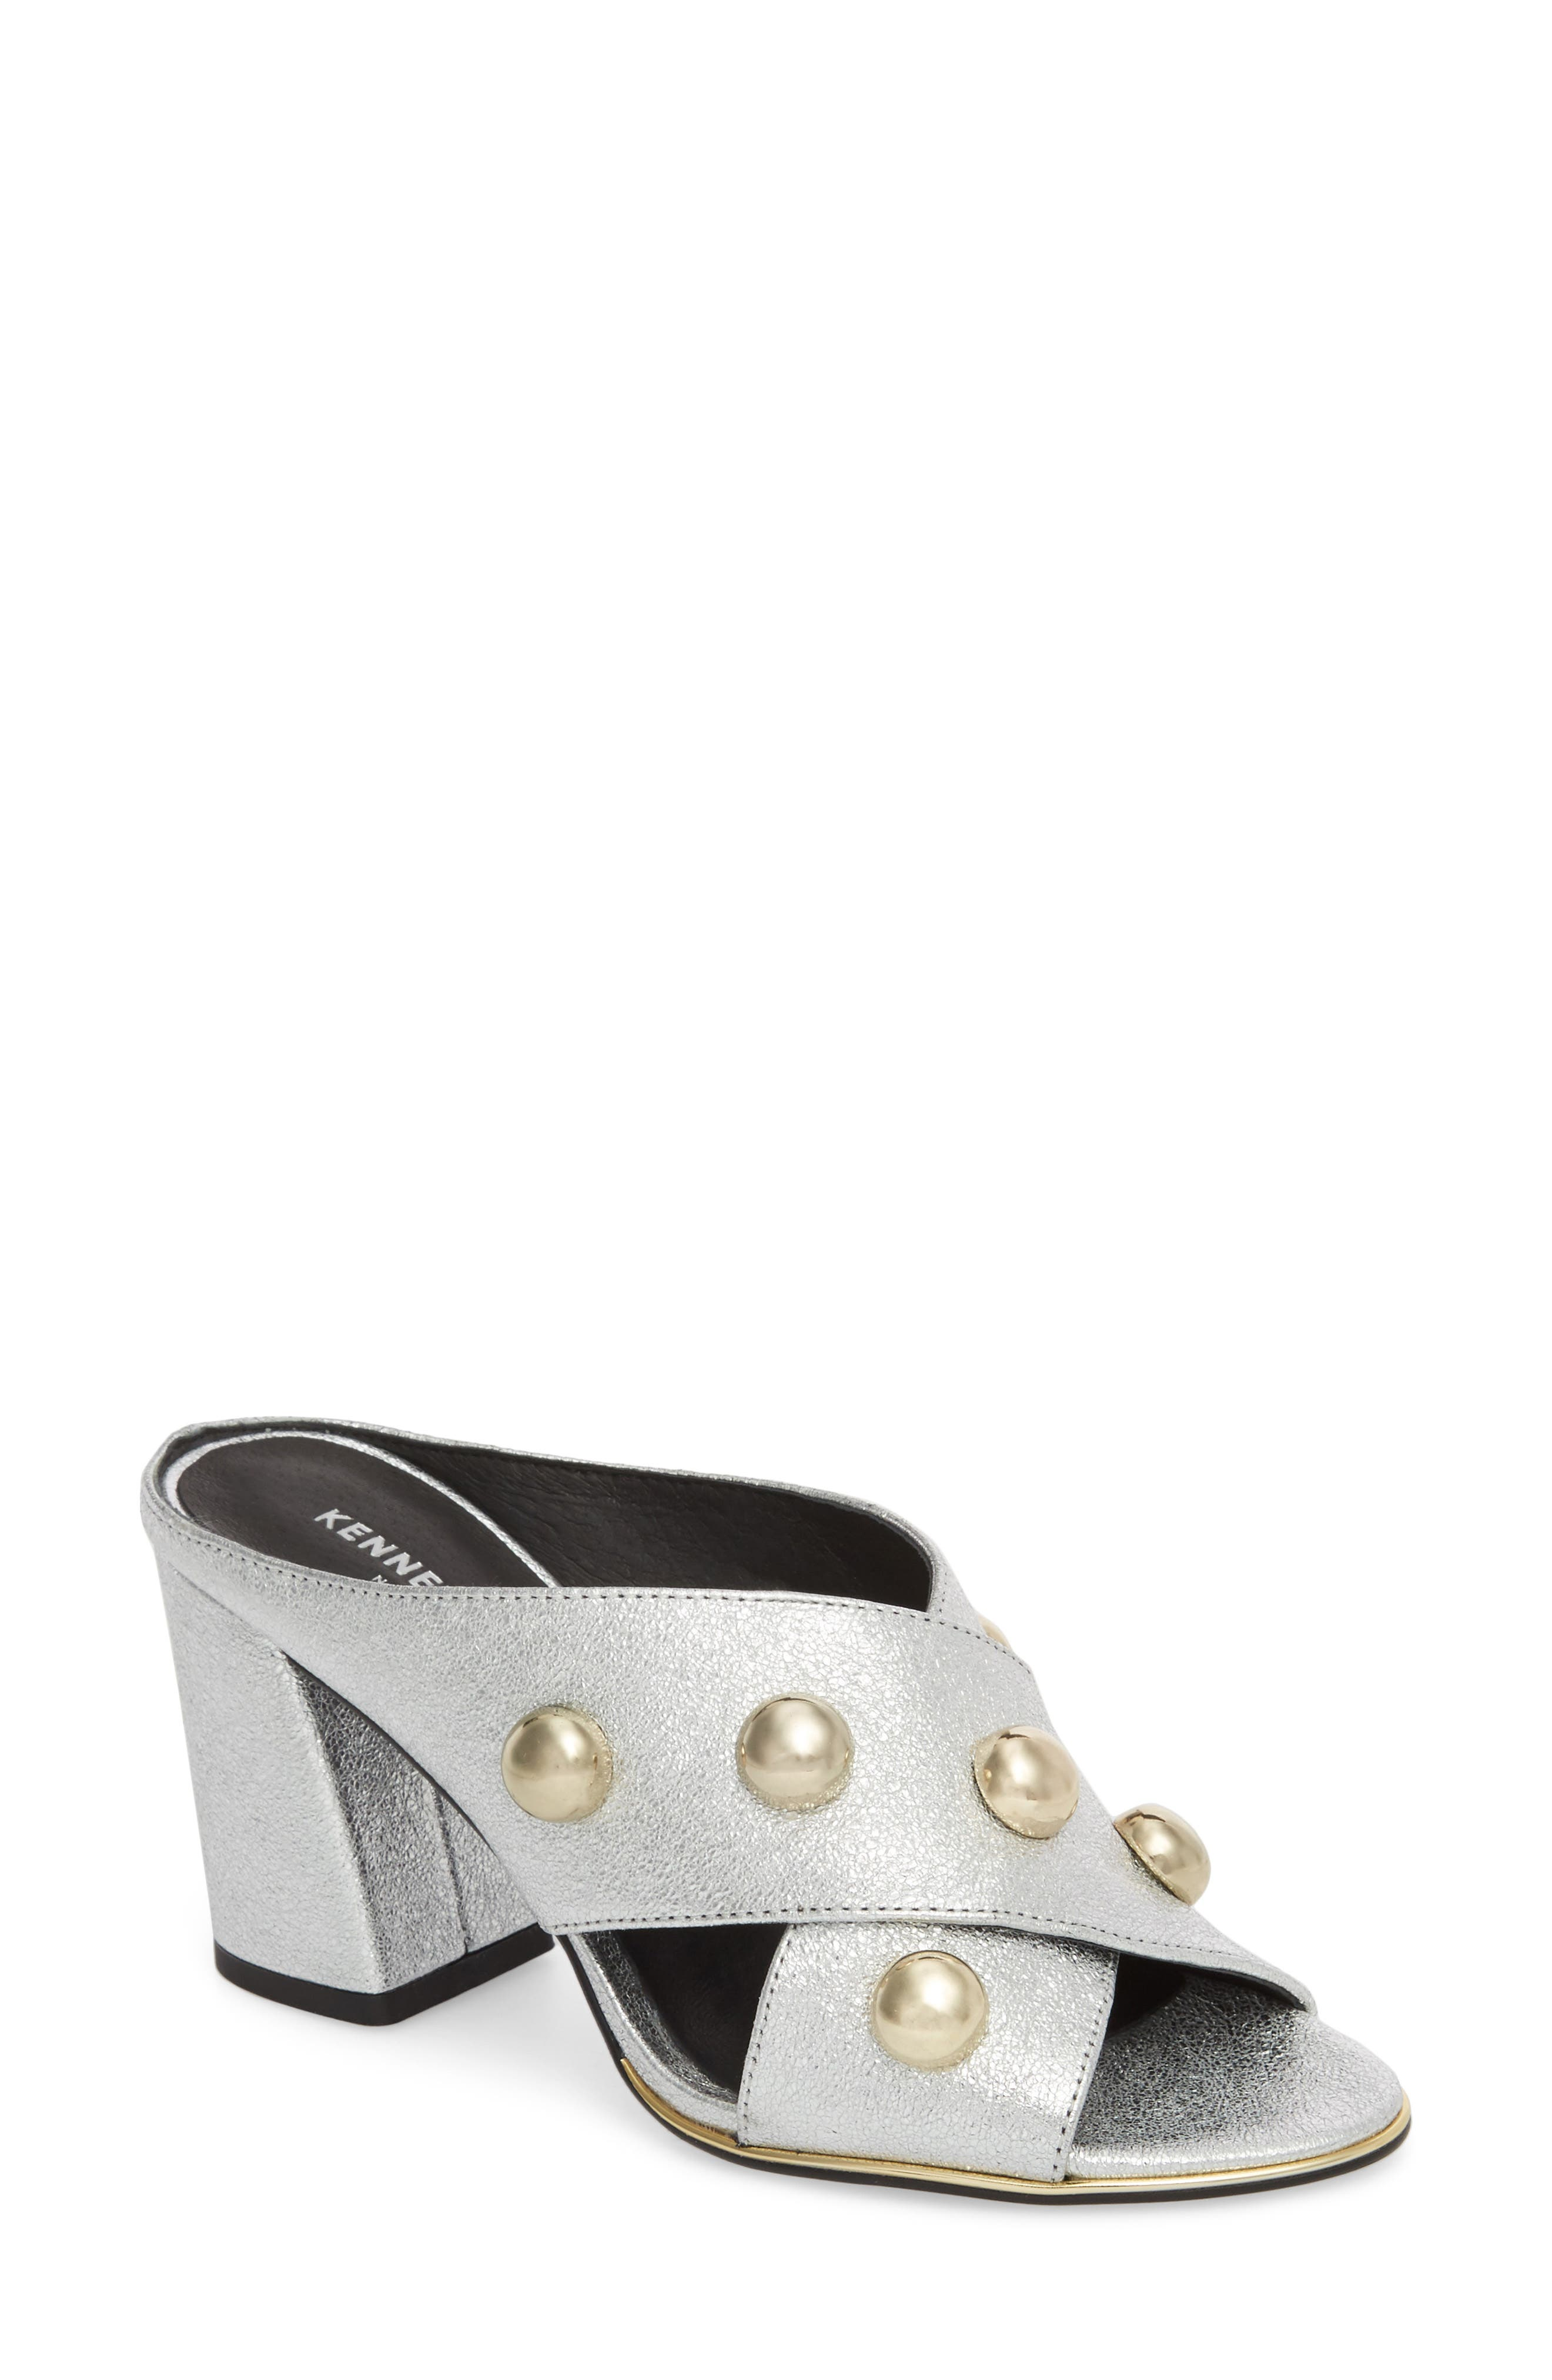 Lyra Sandal,                         Main,                         color, Silver Leather